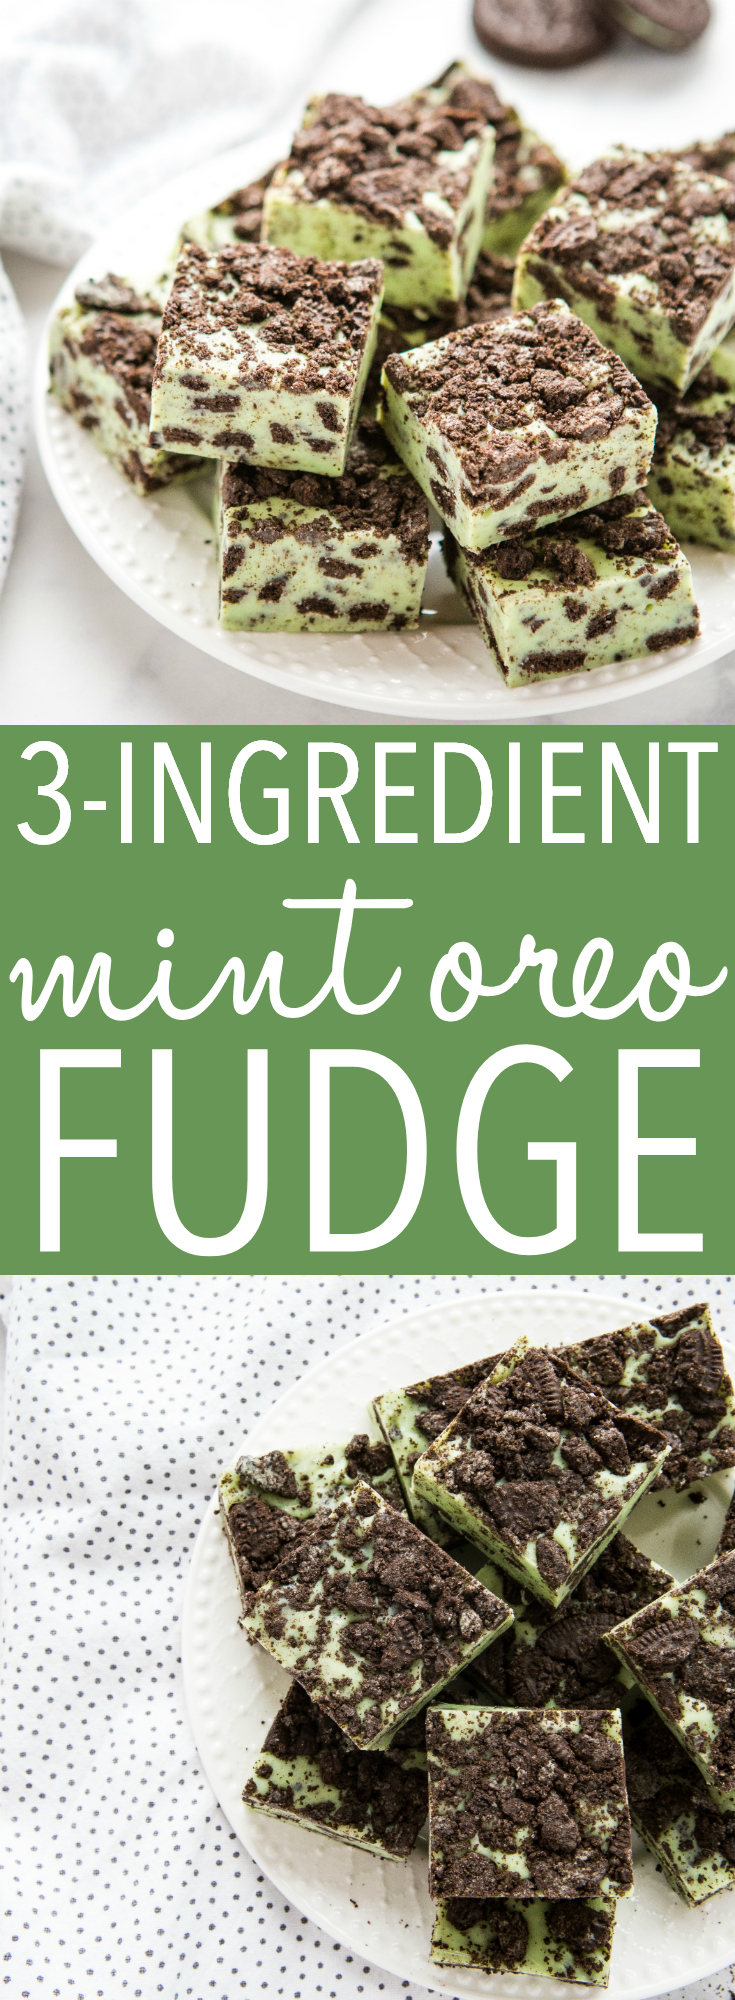 This Mint Oreo Fudge is the perfect easy treat recipe for Mint Oreo lovers, especially for St. Patrick's Day! Make it in minutes with only a few ingredients! Recipe from thebusybaker.ca! #stpatricksday #green #fudge #chocolate #whitechocolate #oreo #dessert #treat #sweet via @busybakerblog